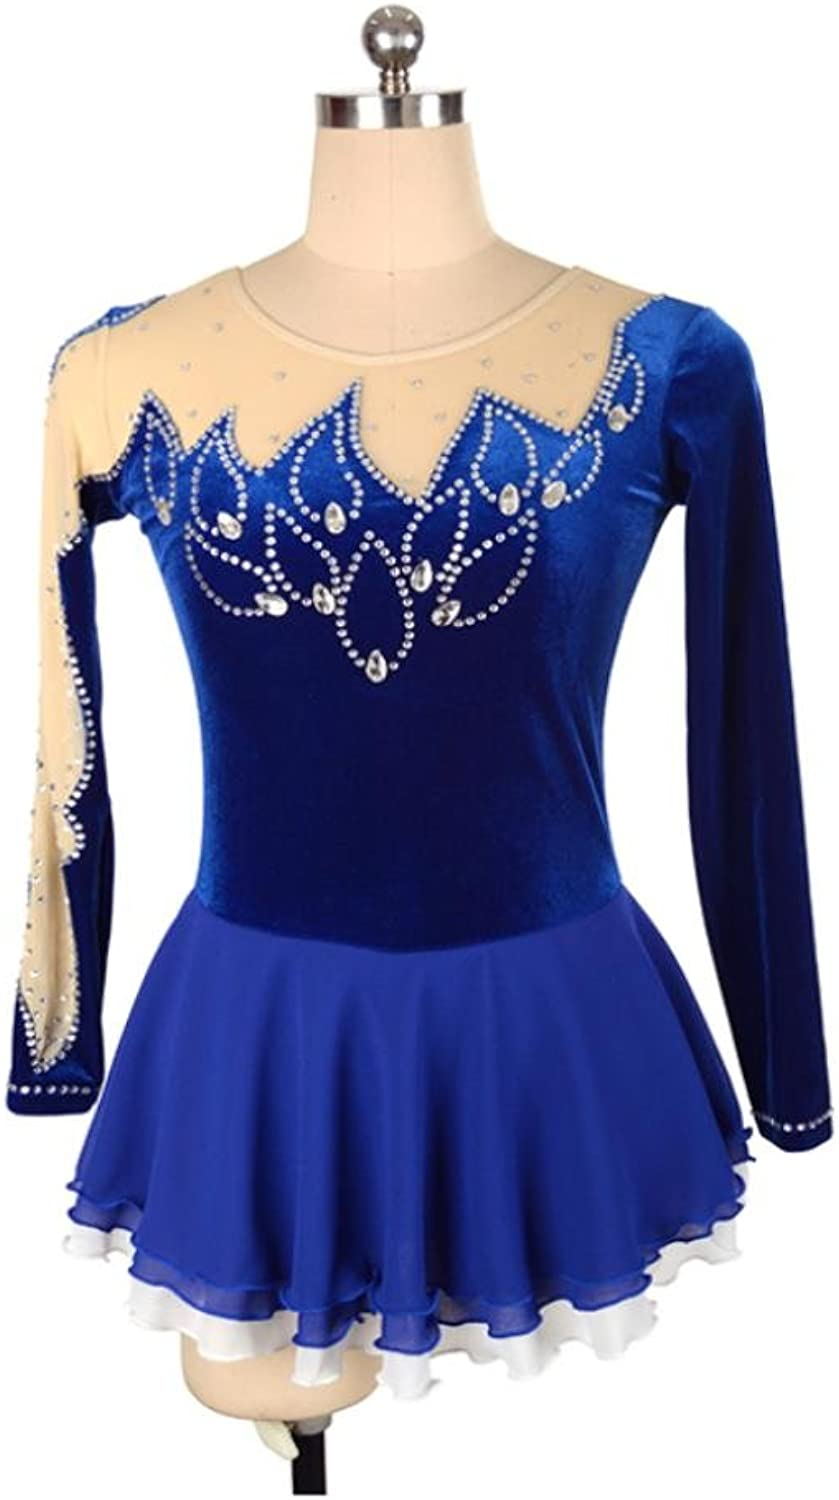 Heart&M Figure Skating Dress Women Girls' Ice Skating Competition Costume Velvet Stretchy Rhinestone Skating Wear Long Sleeve bluee